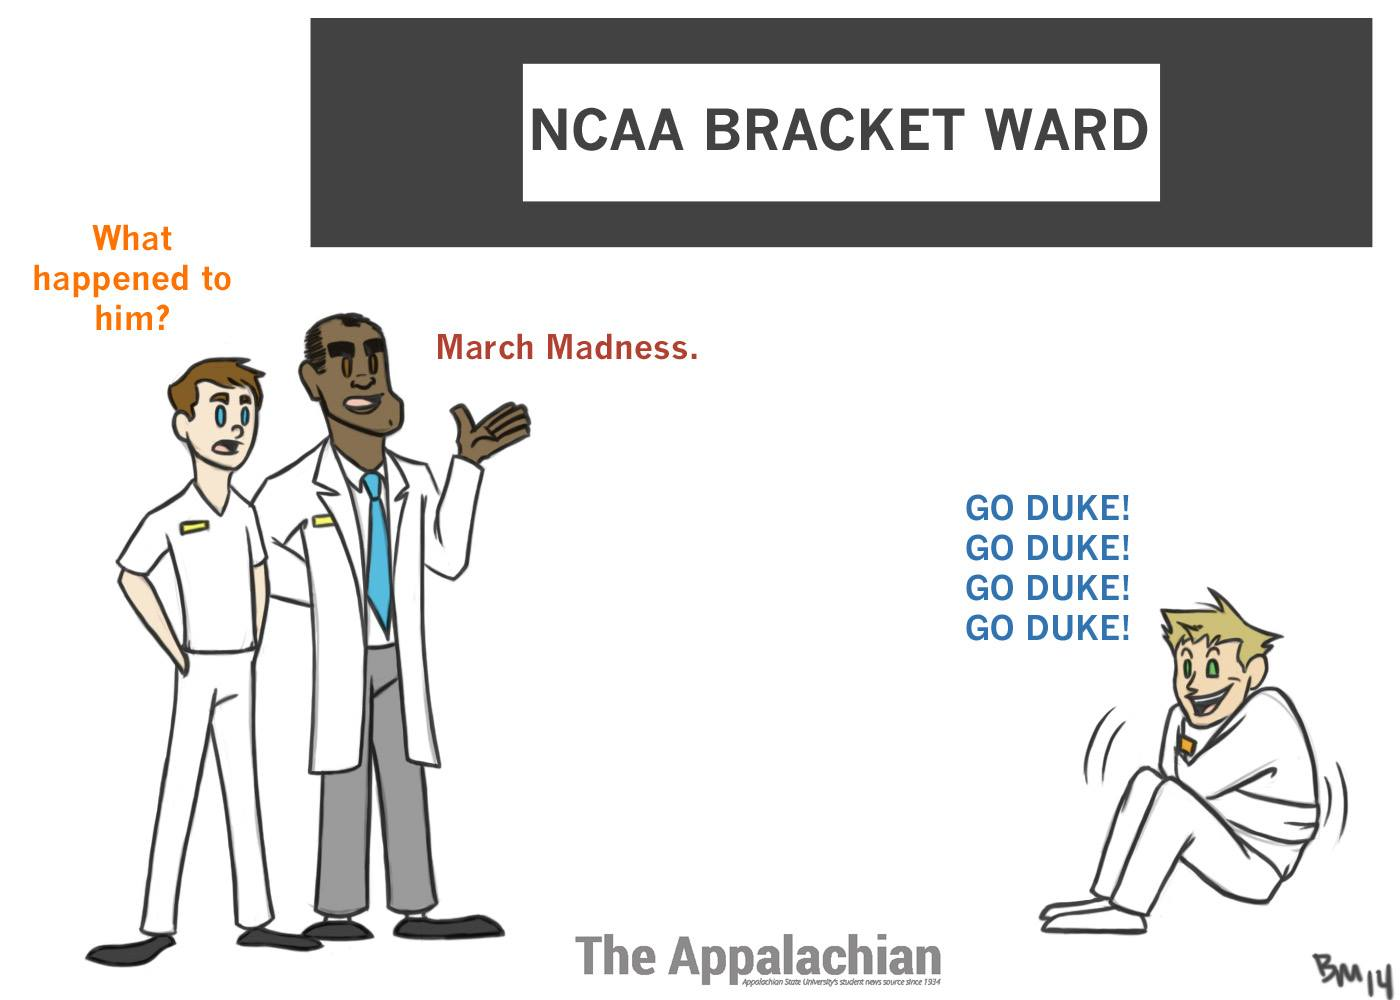 Some basketball fans this year suffer from 'March Madness'